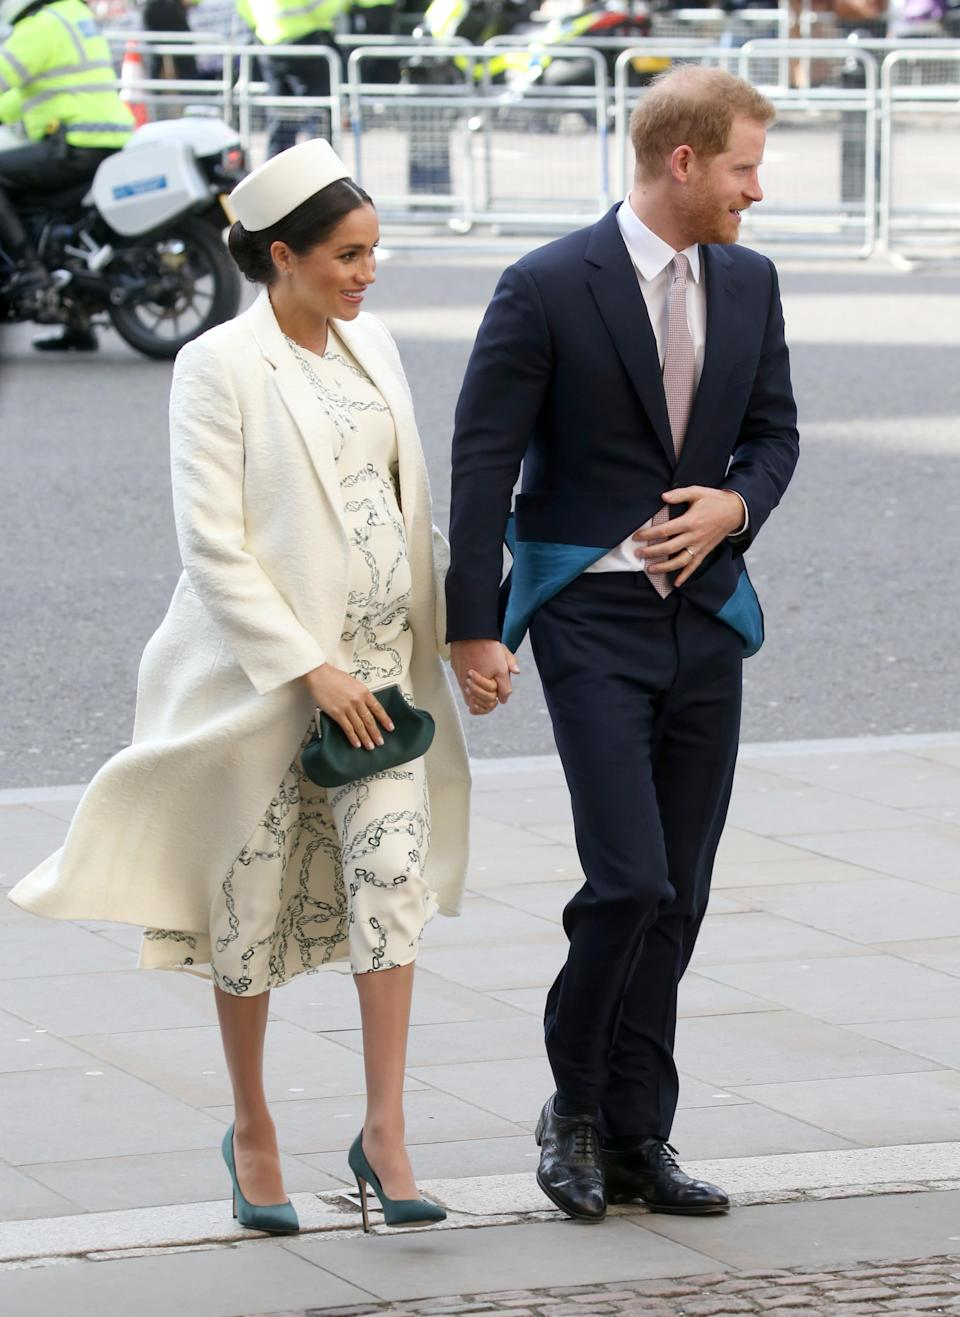 Harry and Meghan at the Commonwealth Day service [Photo: Getty]